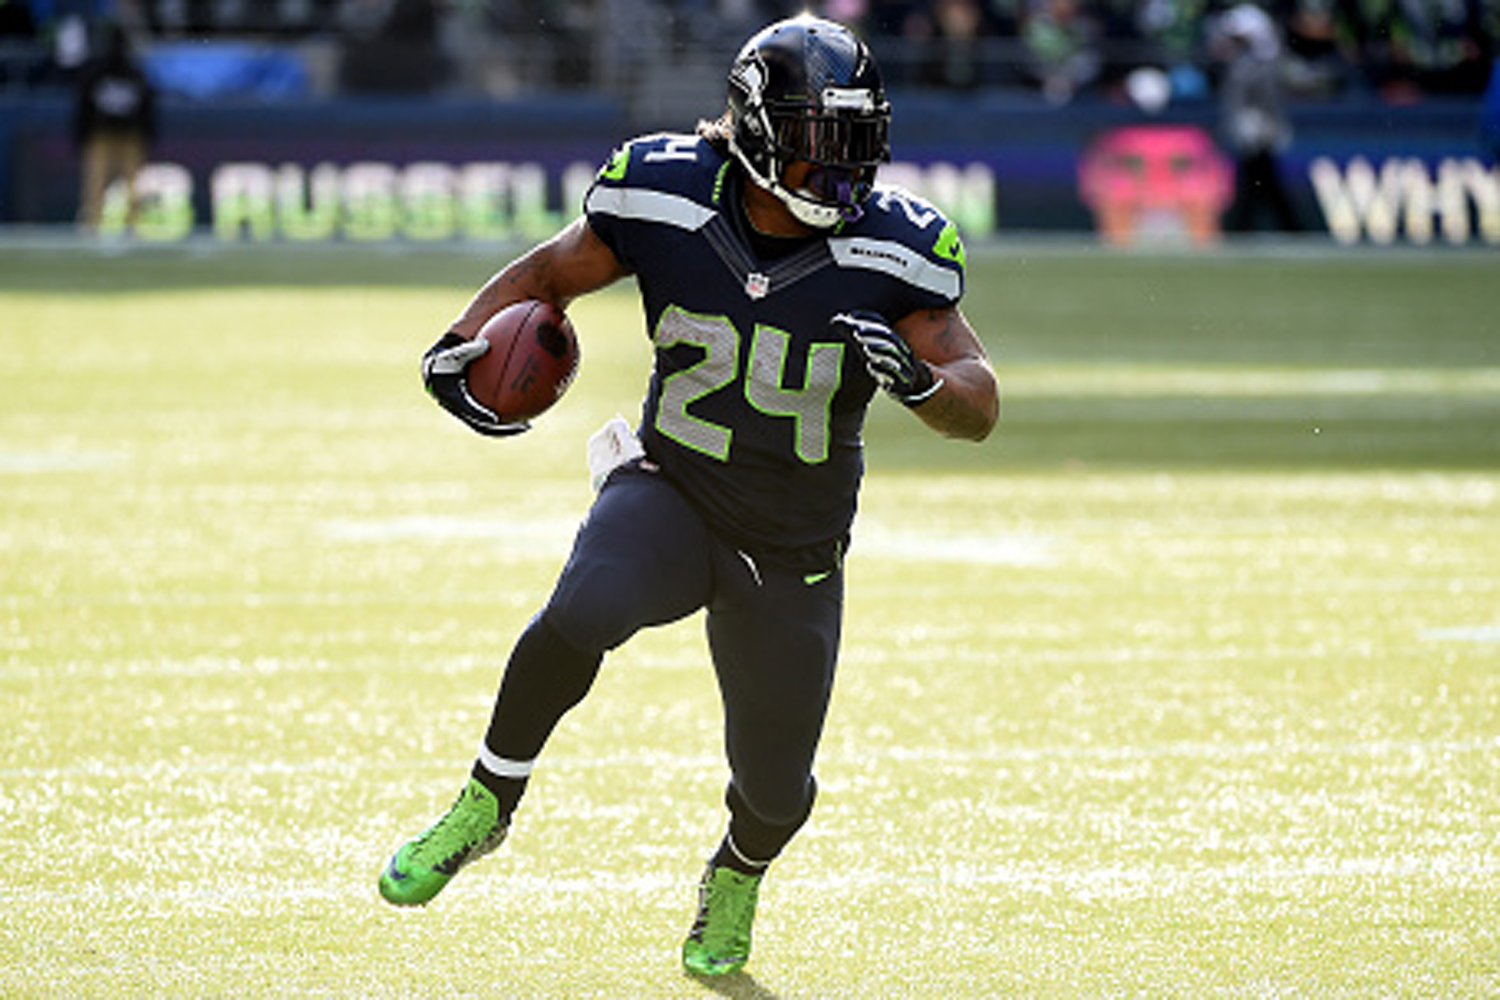 Marshawn Lynch #24 of the Seattle Seahawks runs the ball in the first quarter against the Arizona Cardinals during their game at CenturyLink Field on November 23, 2014, in Seattle, Washington.